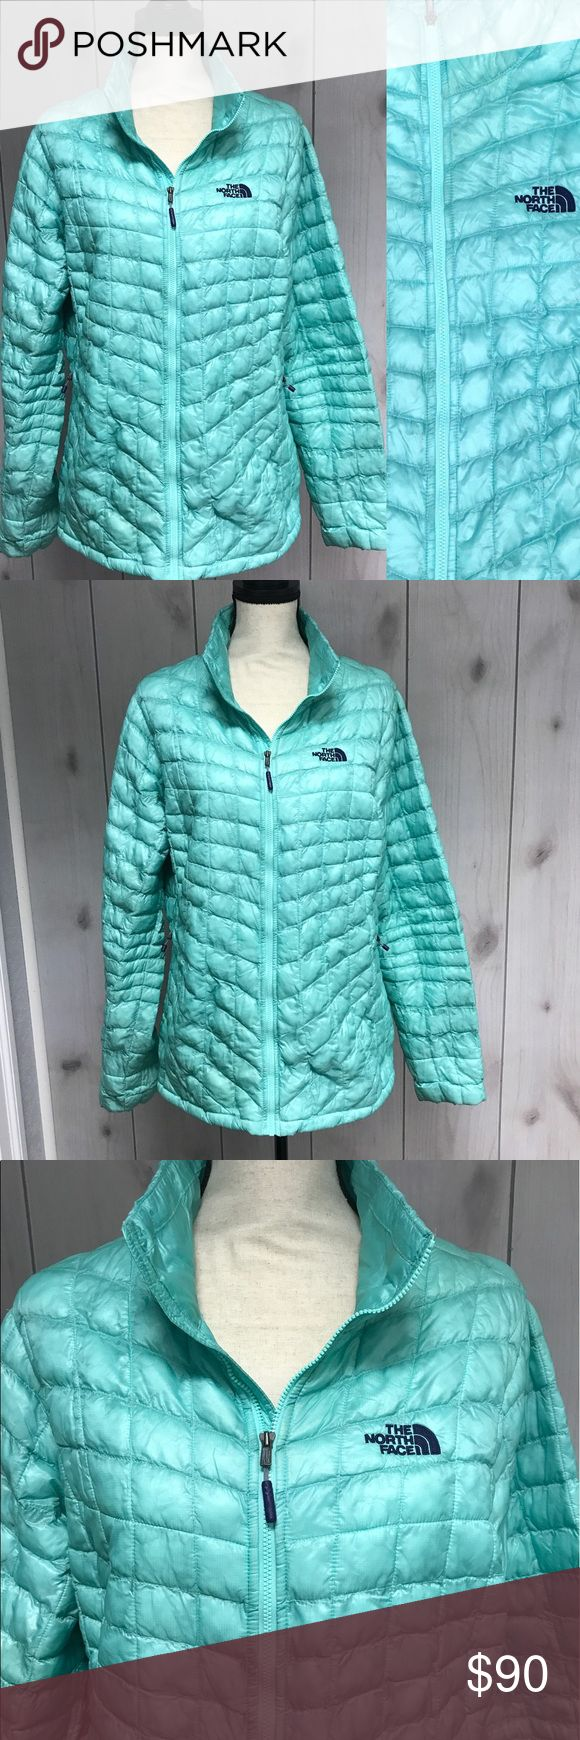 """Women's North Face Thermoball Green Jacket XL Thermoball Jacket. Light sea foam green color. Only flaw is small spot on left shoulder in back and a sleeve that has some discoloration. See photos. Measures 21"""" pit to pit, 27"""" length, 26"""" sleeve. The North Face Jackets & Coats"""